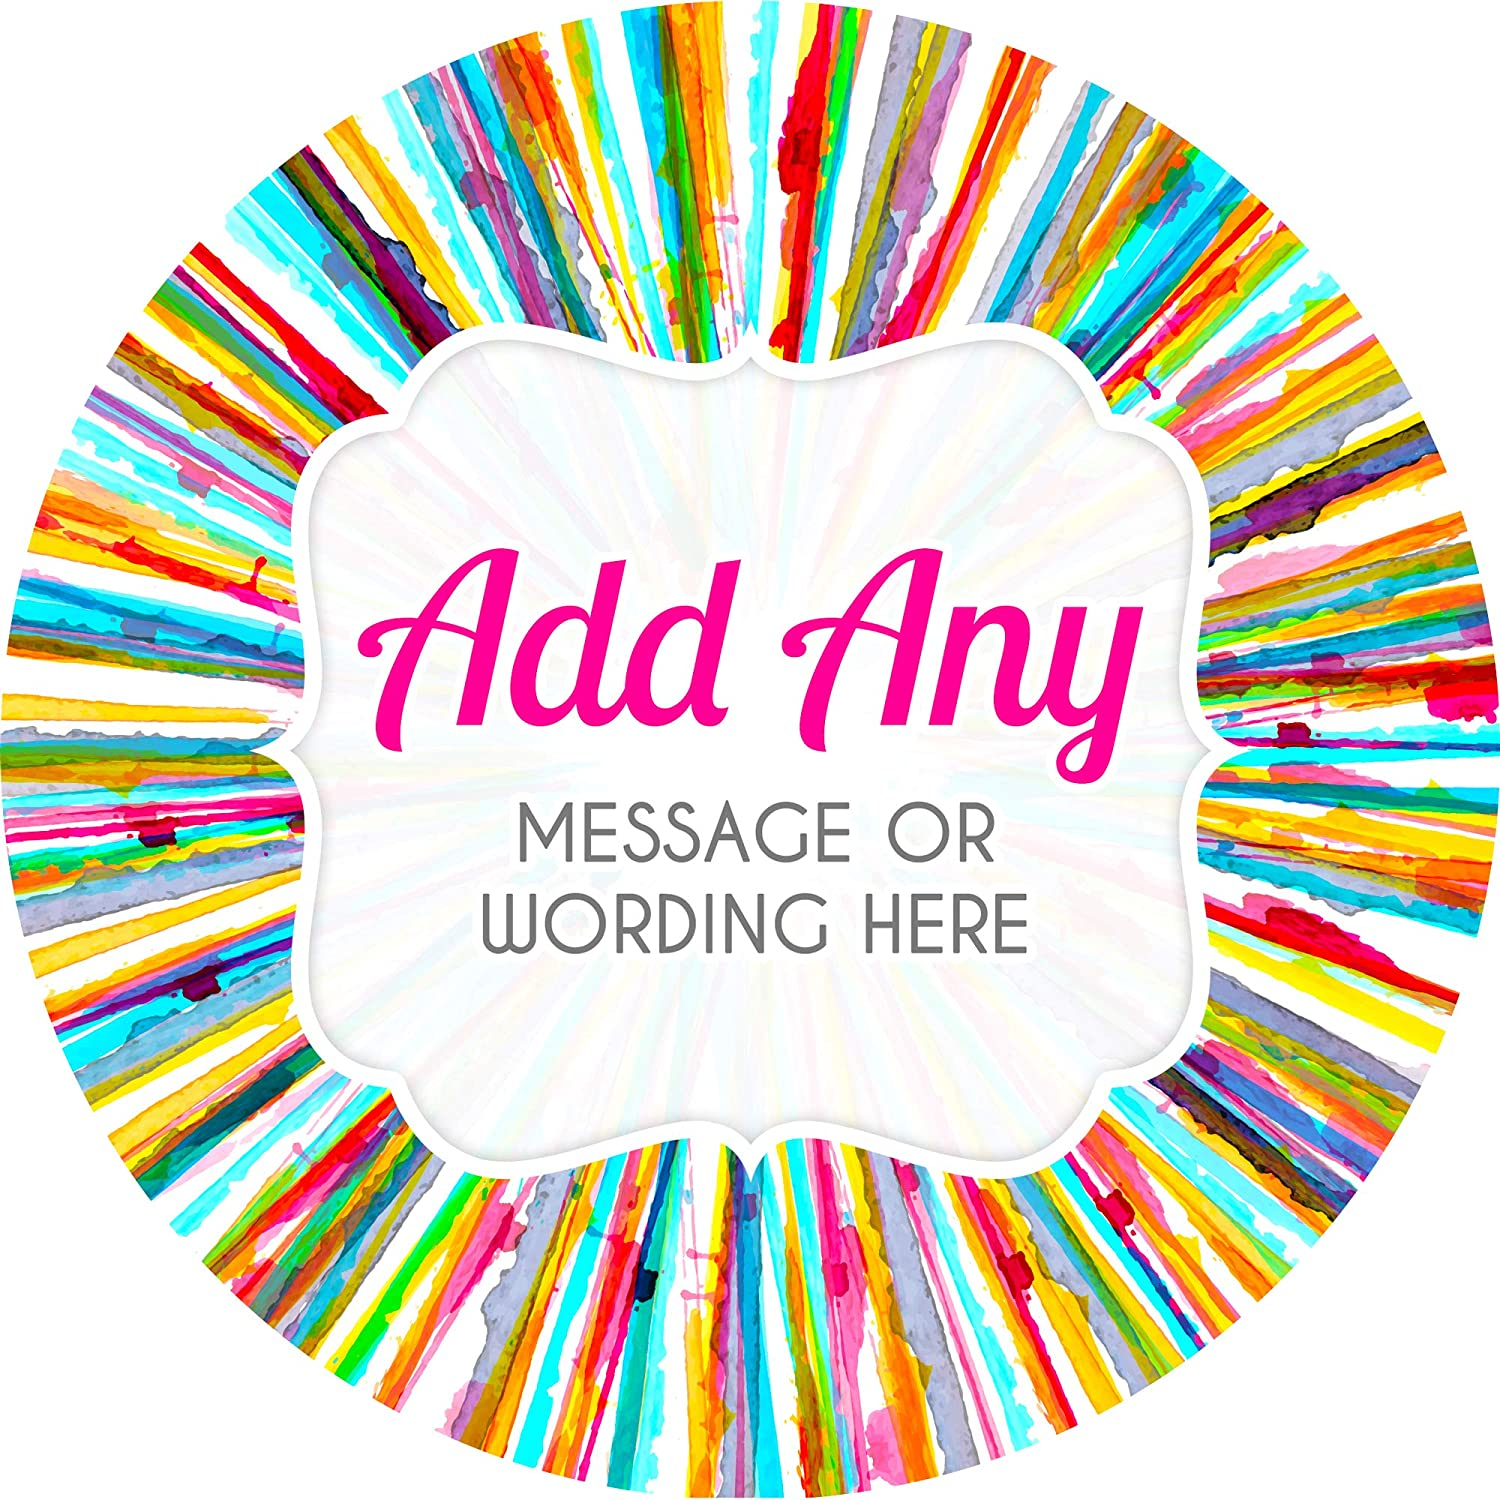 Favours Jars Presentations Gift Boxes Crafts Rainbow Watercolour Stripes Black Sticker Labels Sweet Cones Personalised Seals Ideal for Party Bags 6 Stickers, 9.5cm Each Bottles